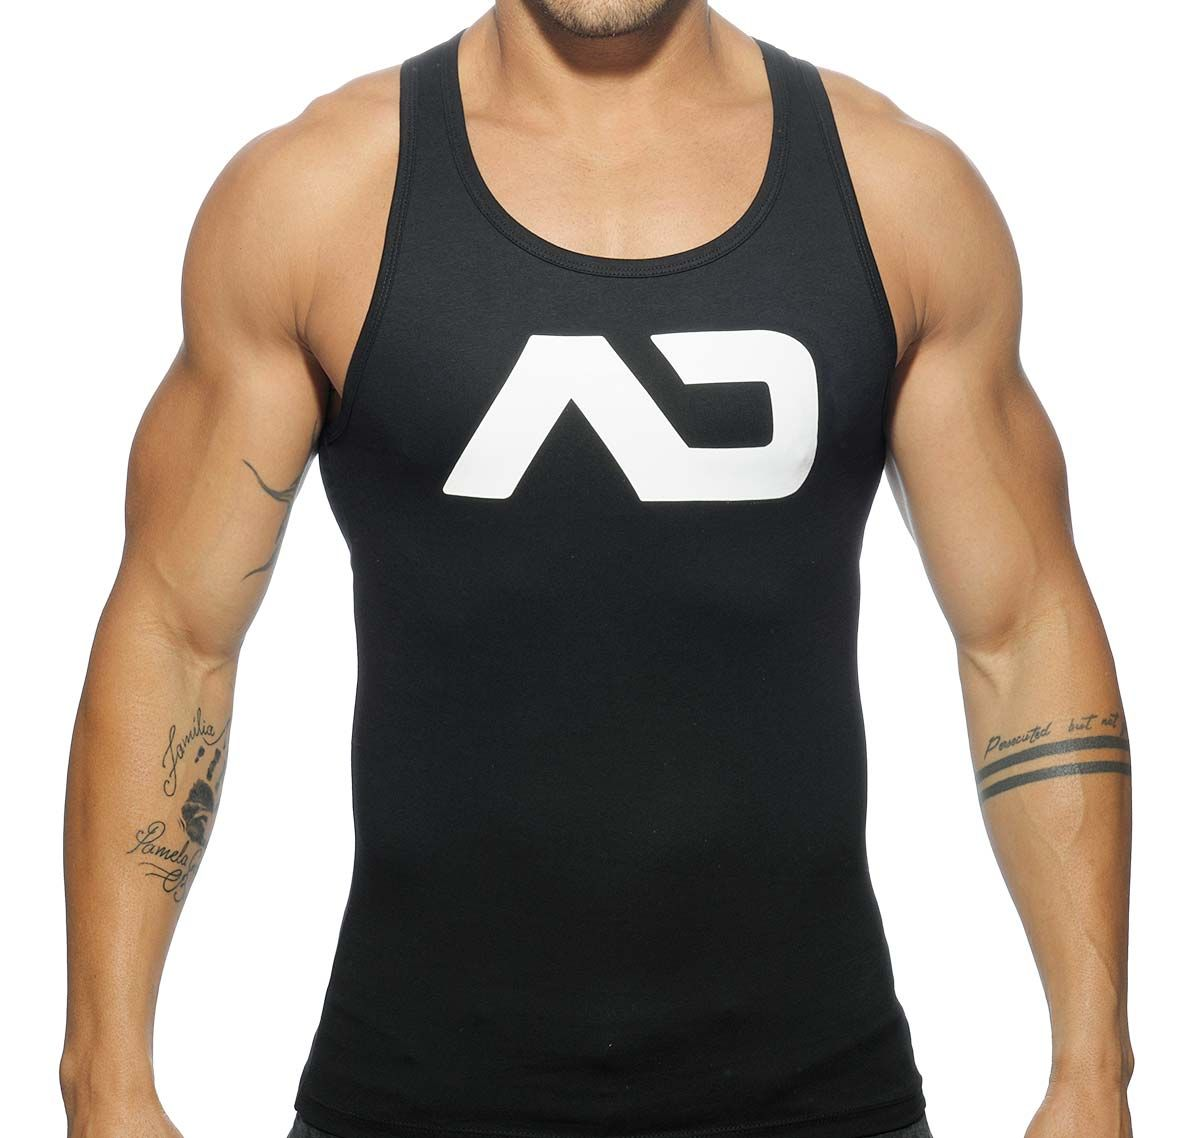 Addicted Sportshirt BASIC AD TANK TOP AD457, schwarz